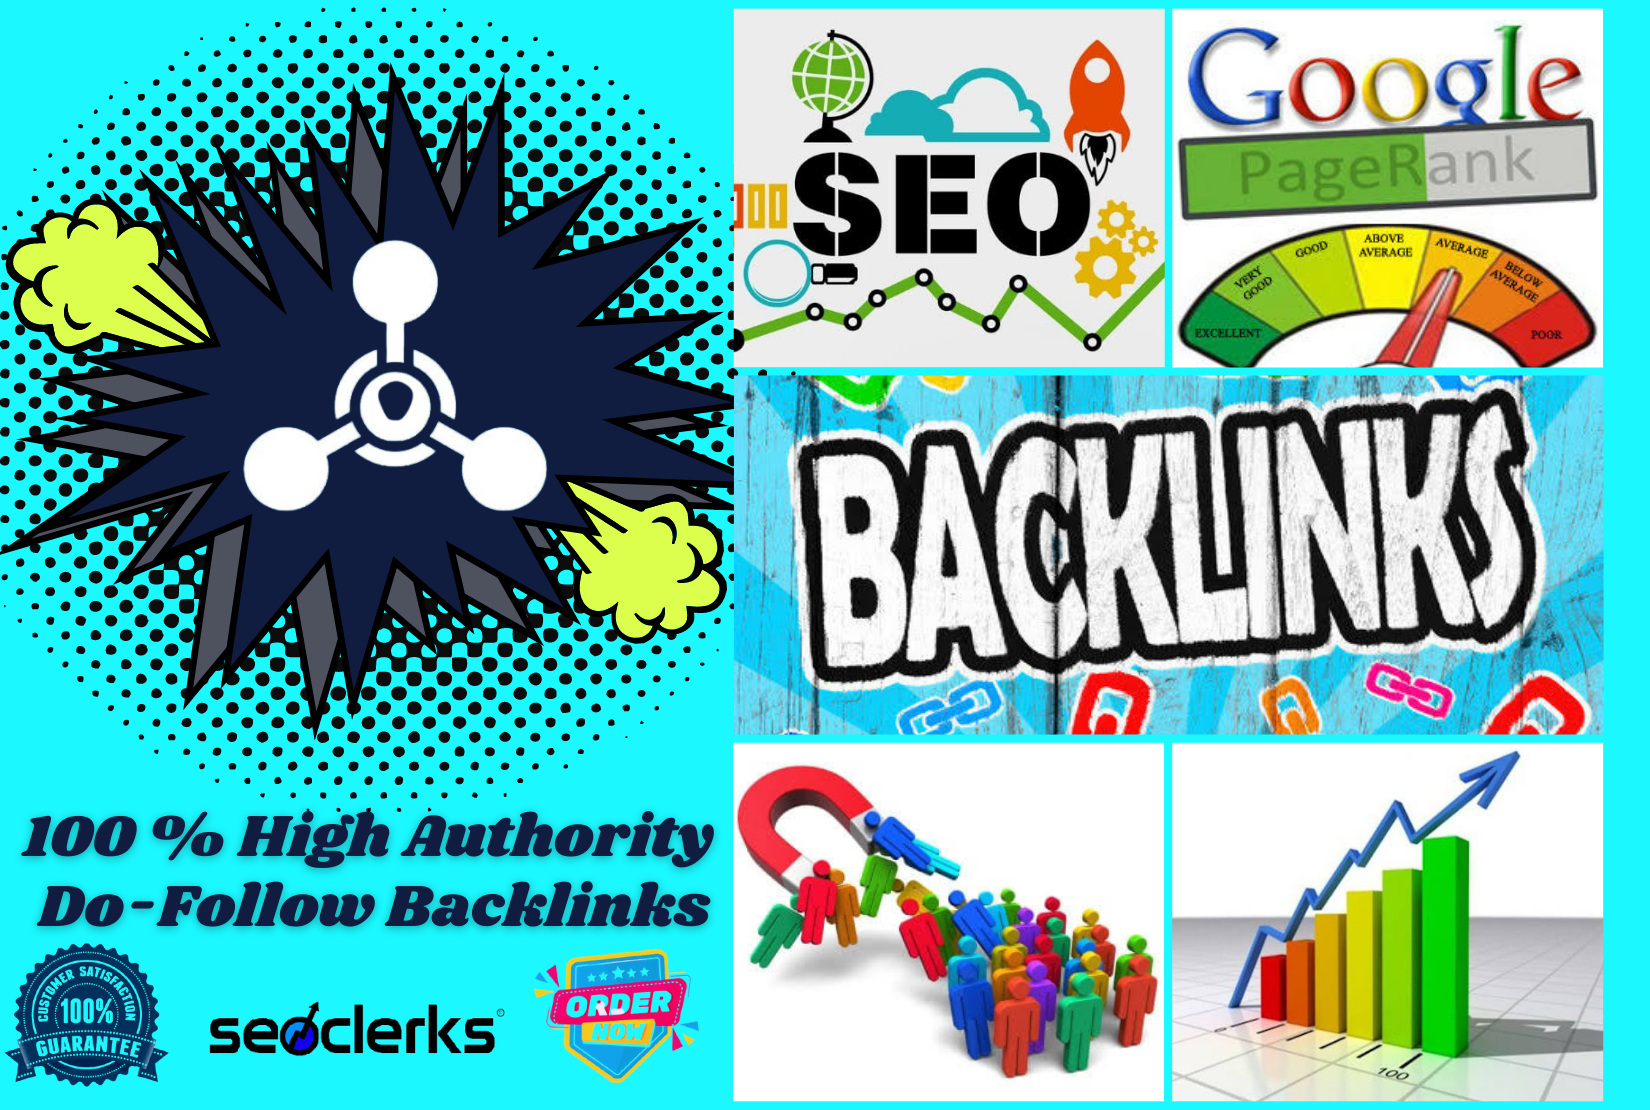 I will build 100 high authority white hat do-follow backlinks